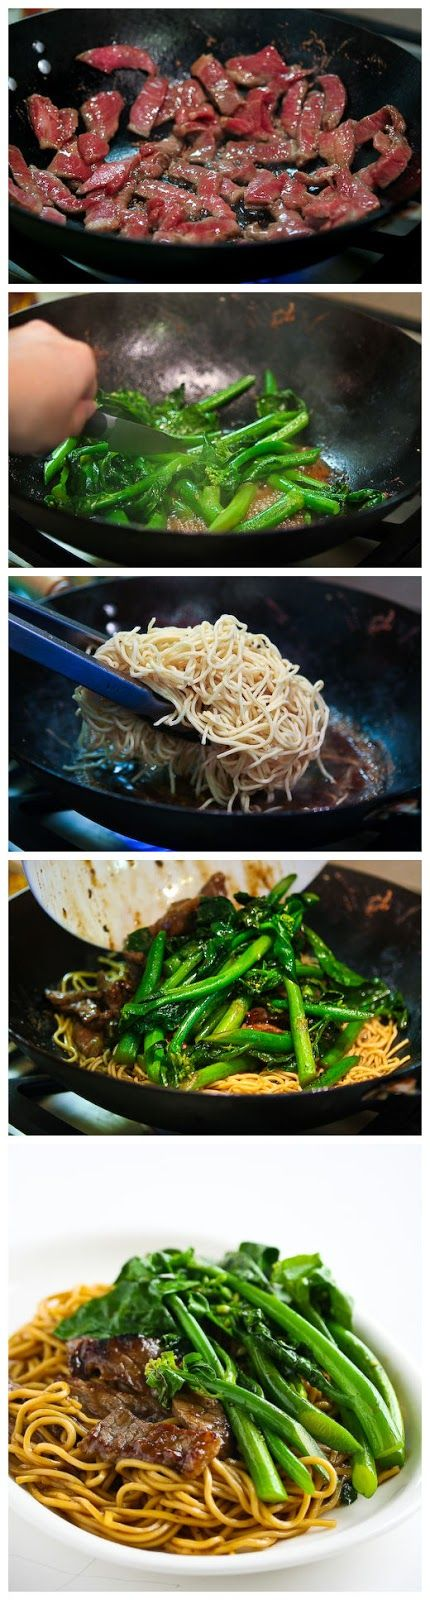 Chinese Broccoli Beef Noodle Stir Fry. #food #recipe #stirfry #highfashionhome #veggies #beef #chinesefood #noodles